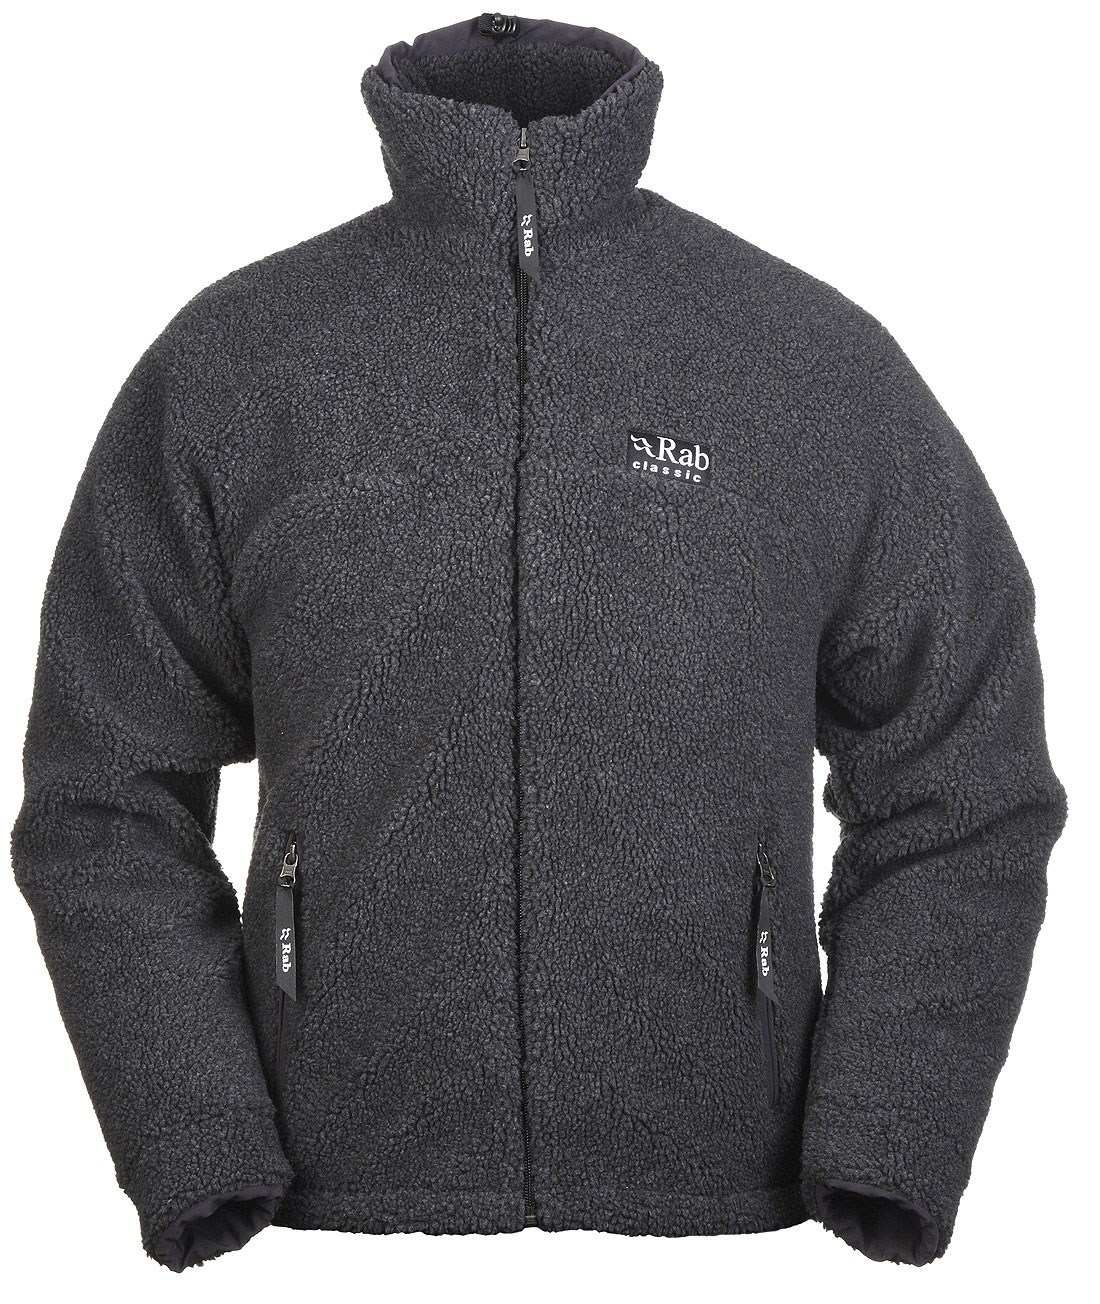 Double Fleece Jacket tug4a0